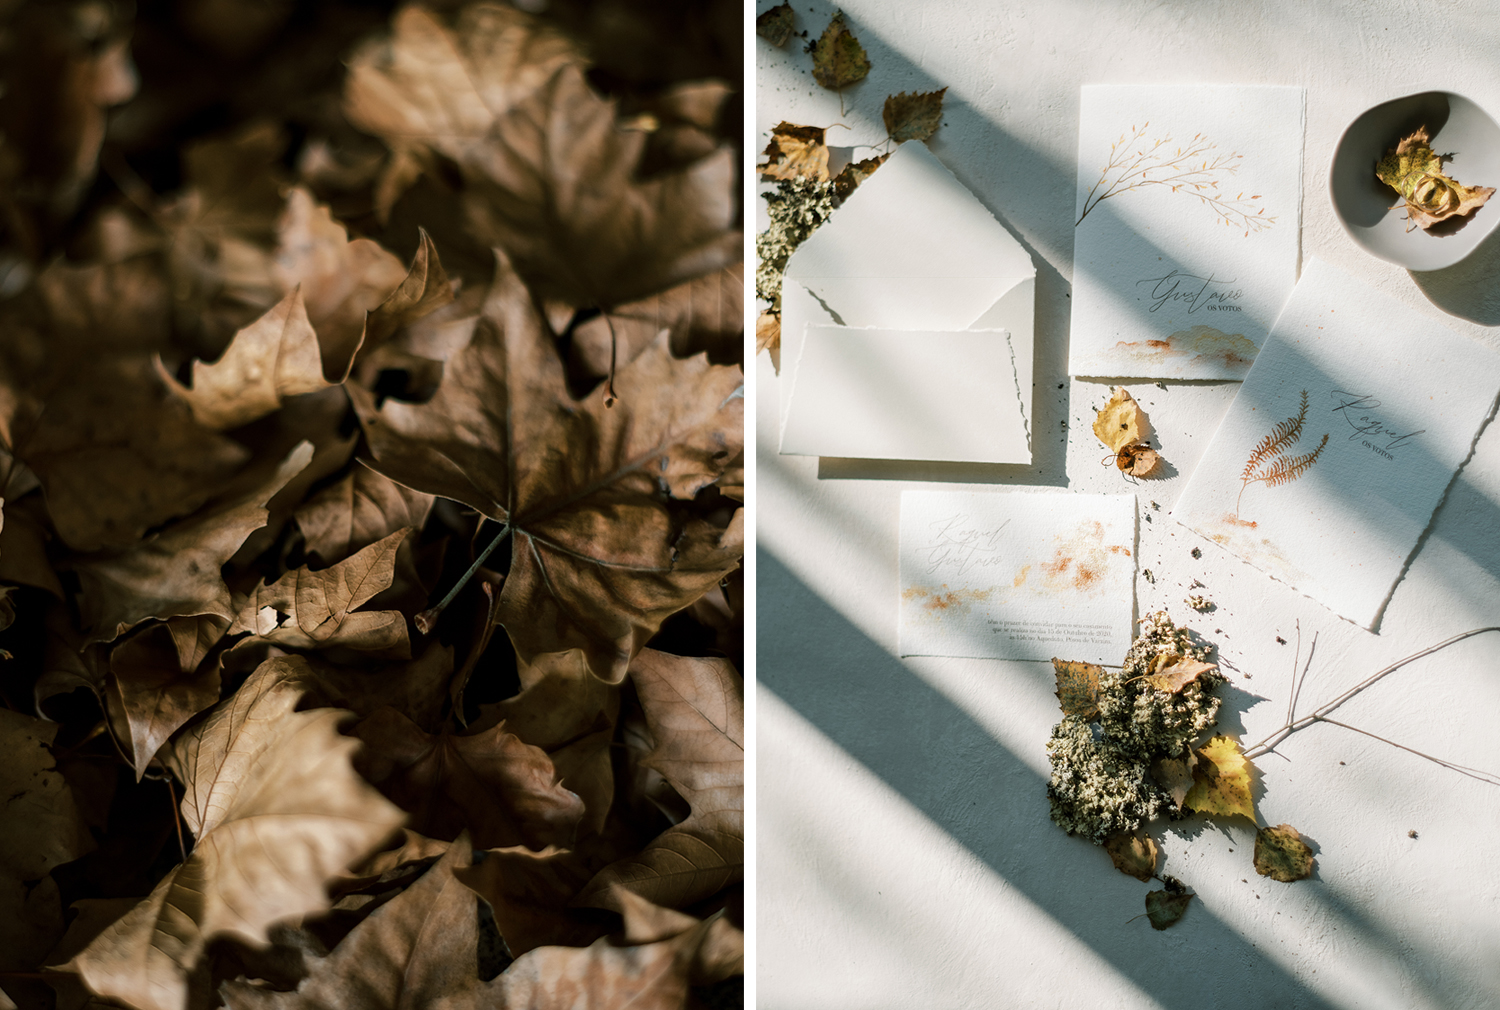 Creative direction and styling for a workshop